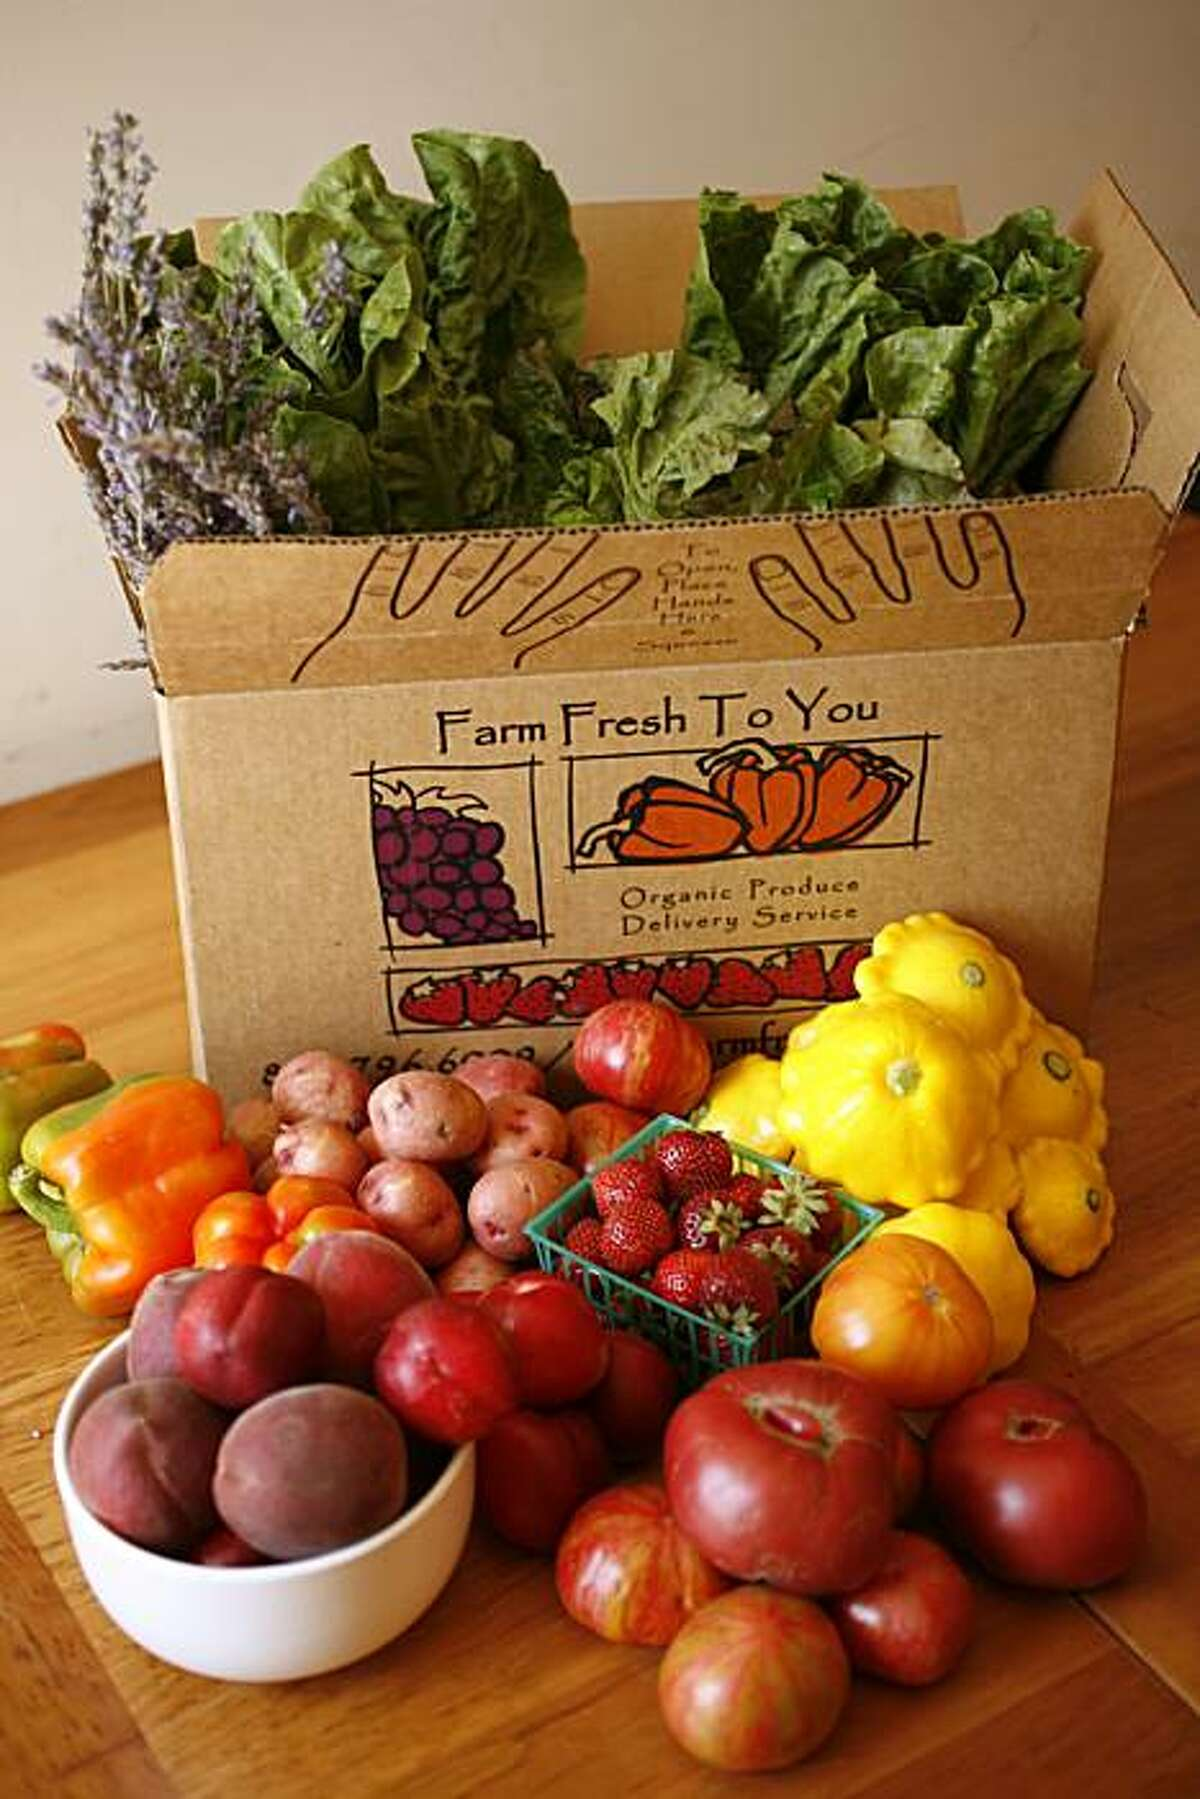 """Julie Caskey's box of fruits and vegetables for her family, delivered by Capay's """"Farm Fresh to You"""" to her home in San Francisco, Calif., on June 18, 2008 Photo by Craig Lee / The Chronicle"""